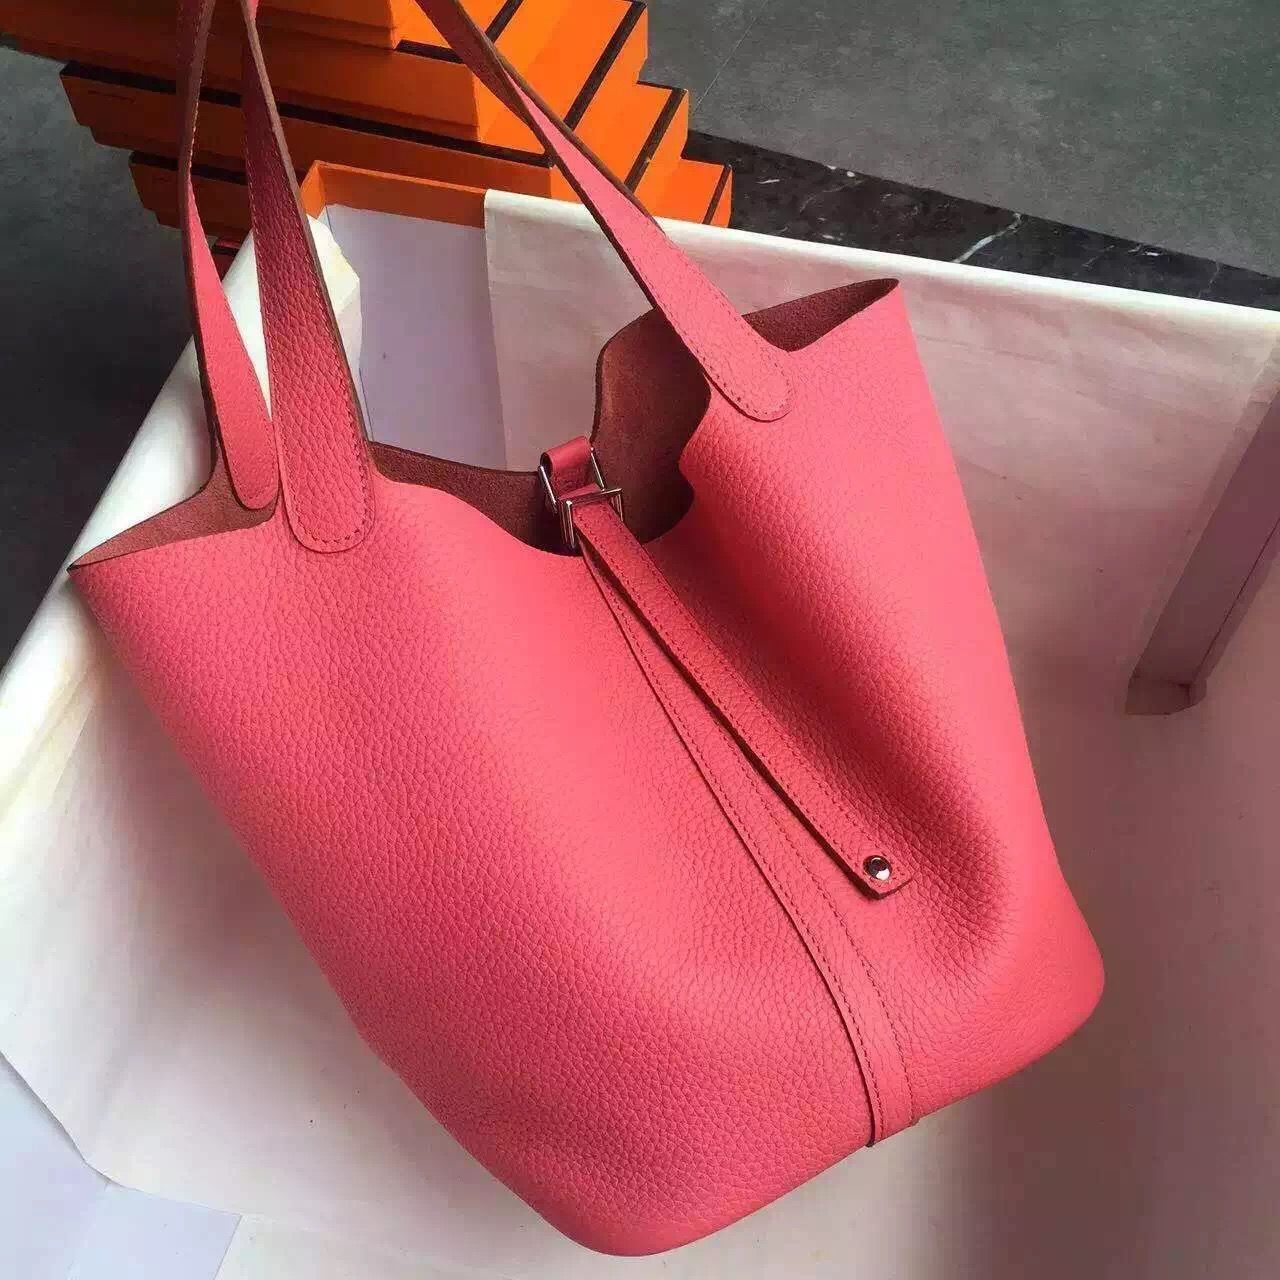 4775bf0519b8 Hermes Original Togo Leather Picotin Lock PM MM Bag Watermelon Red ...